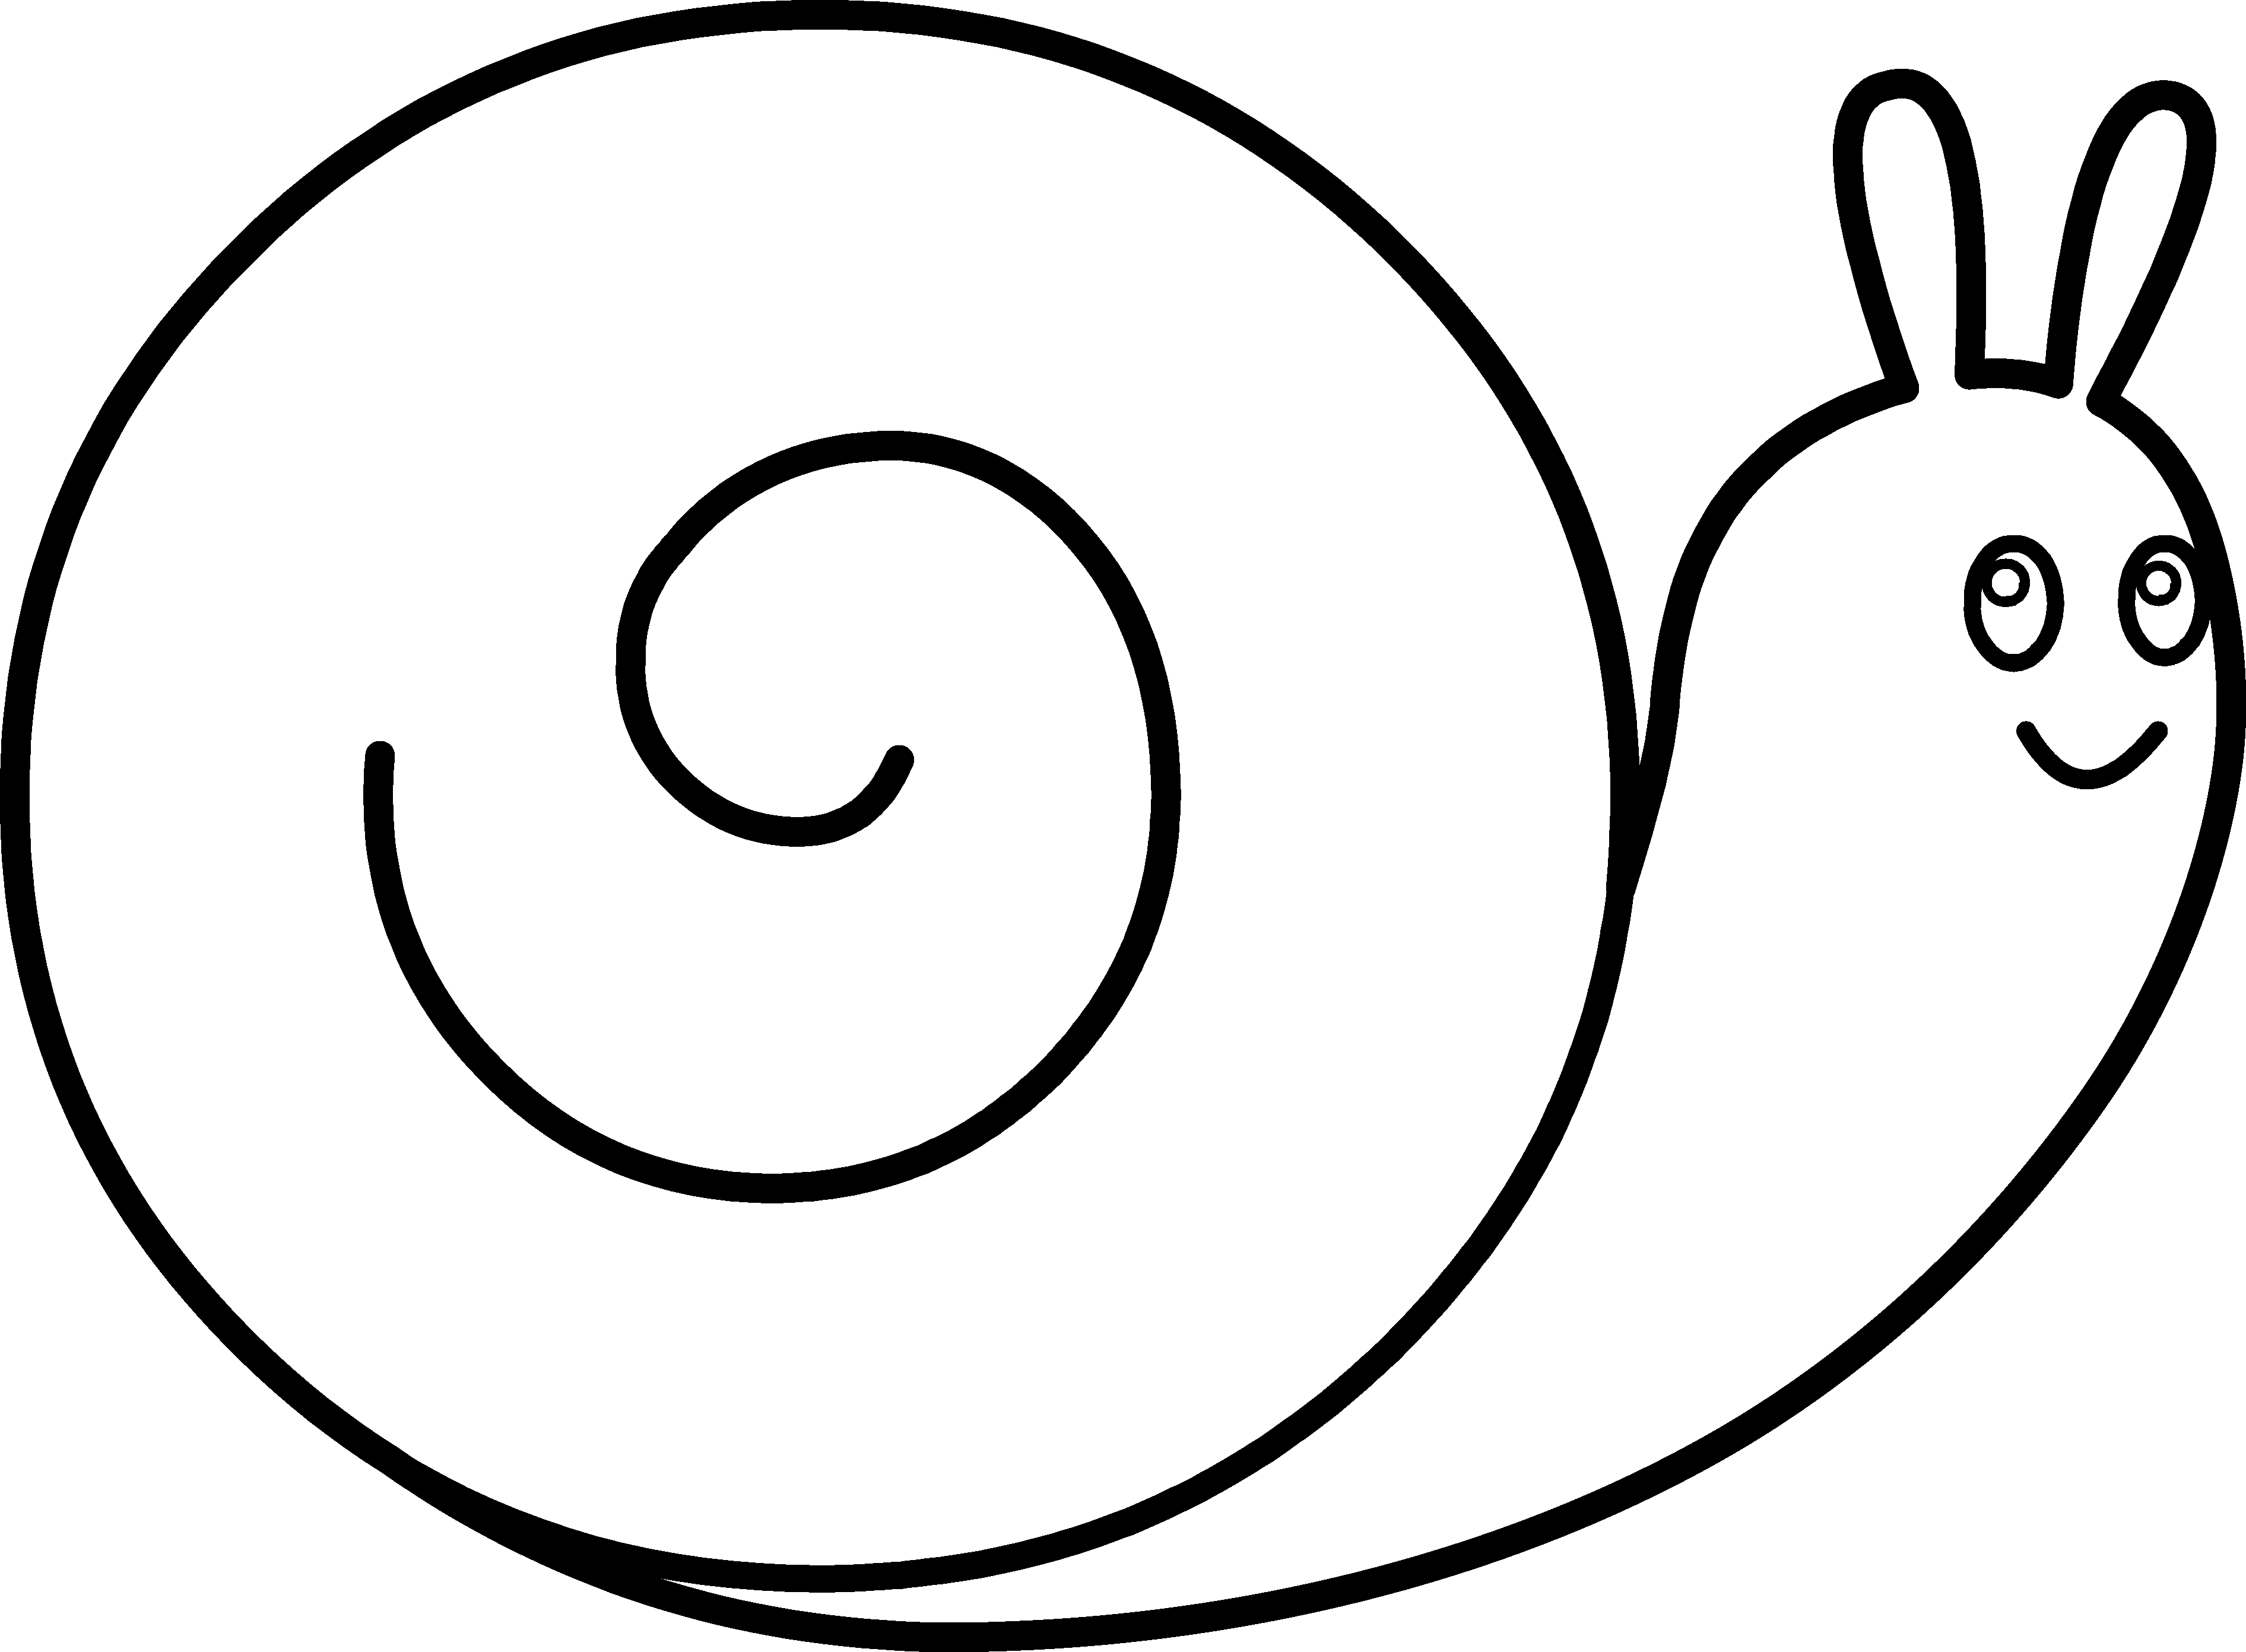 pin Snail clipart outline #5 - PNG Snail Black And White